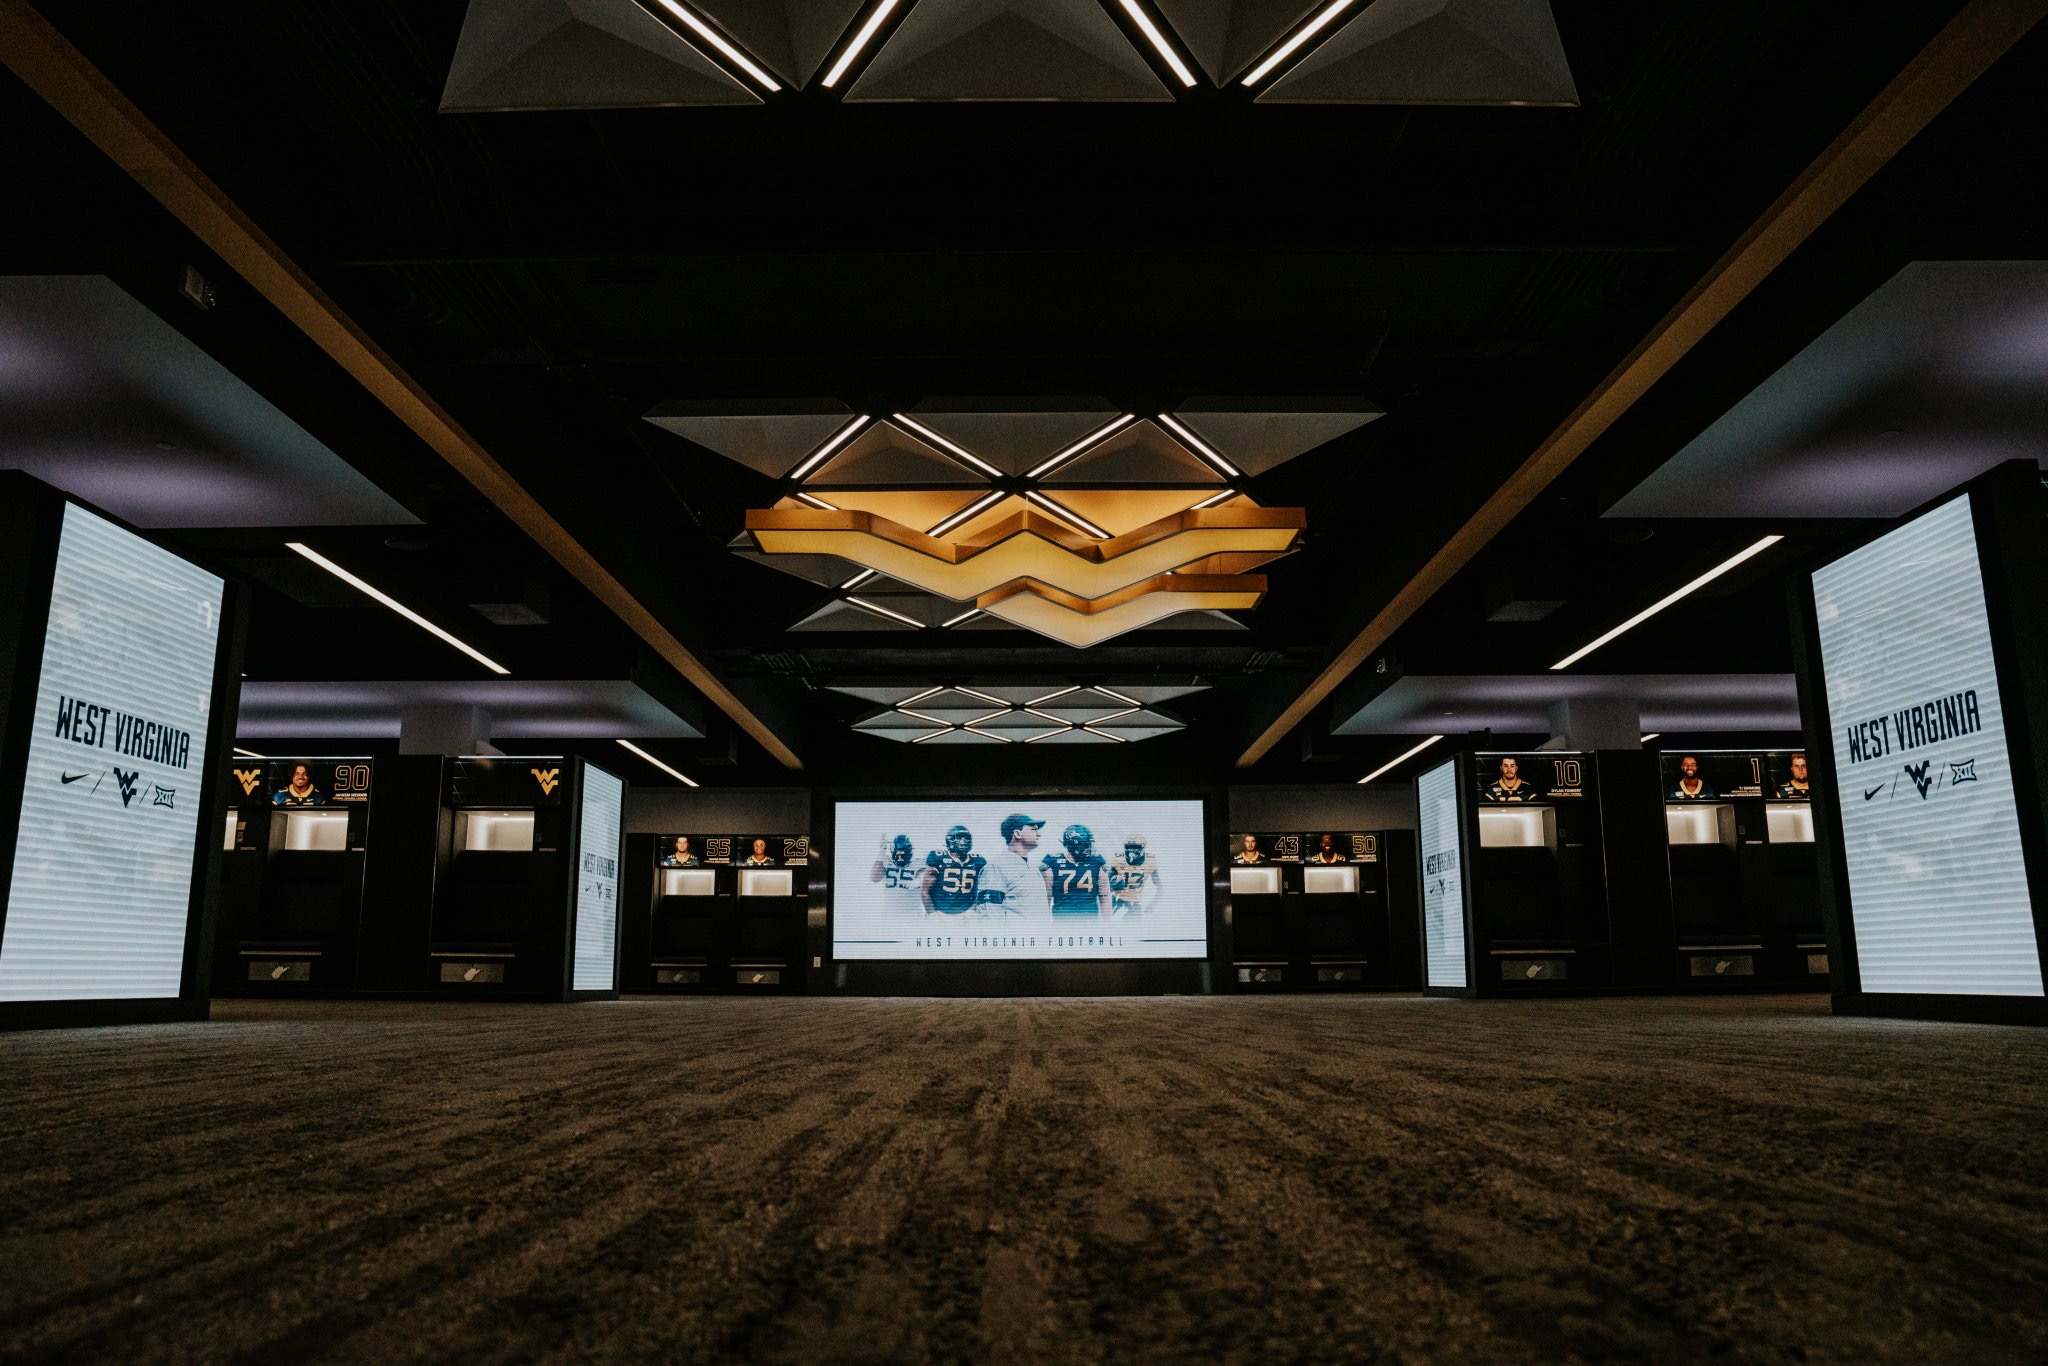 West Virginia University - Football Locker Room Technology